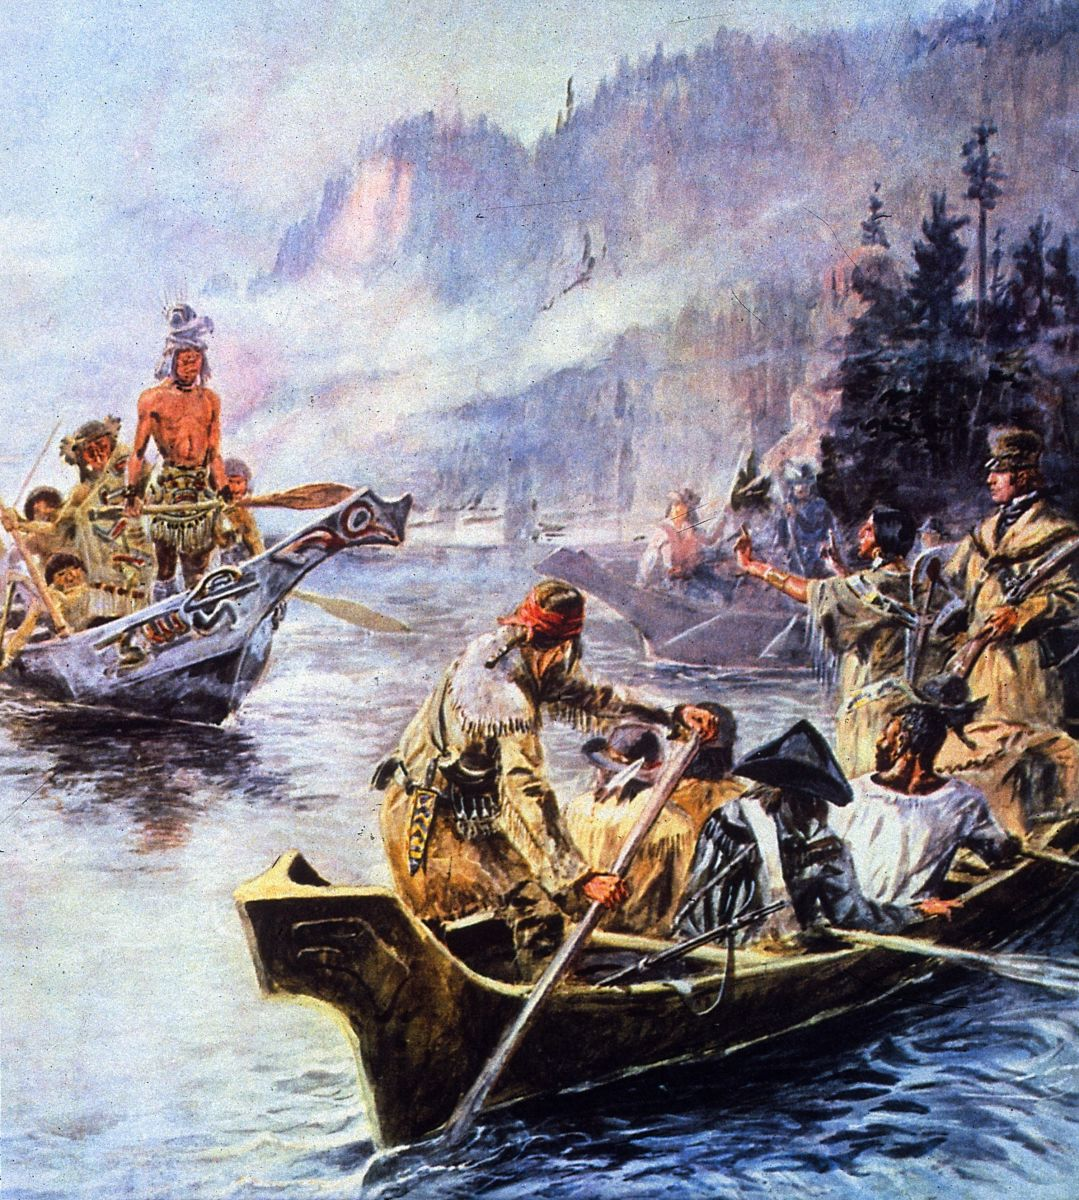 A painting depicting Sacajawea interpreting Lewis and Clark's intentions to the Chinook Native Americans